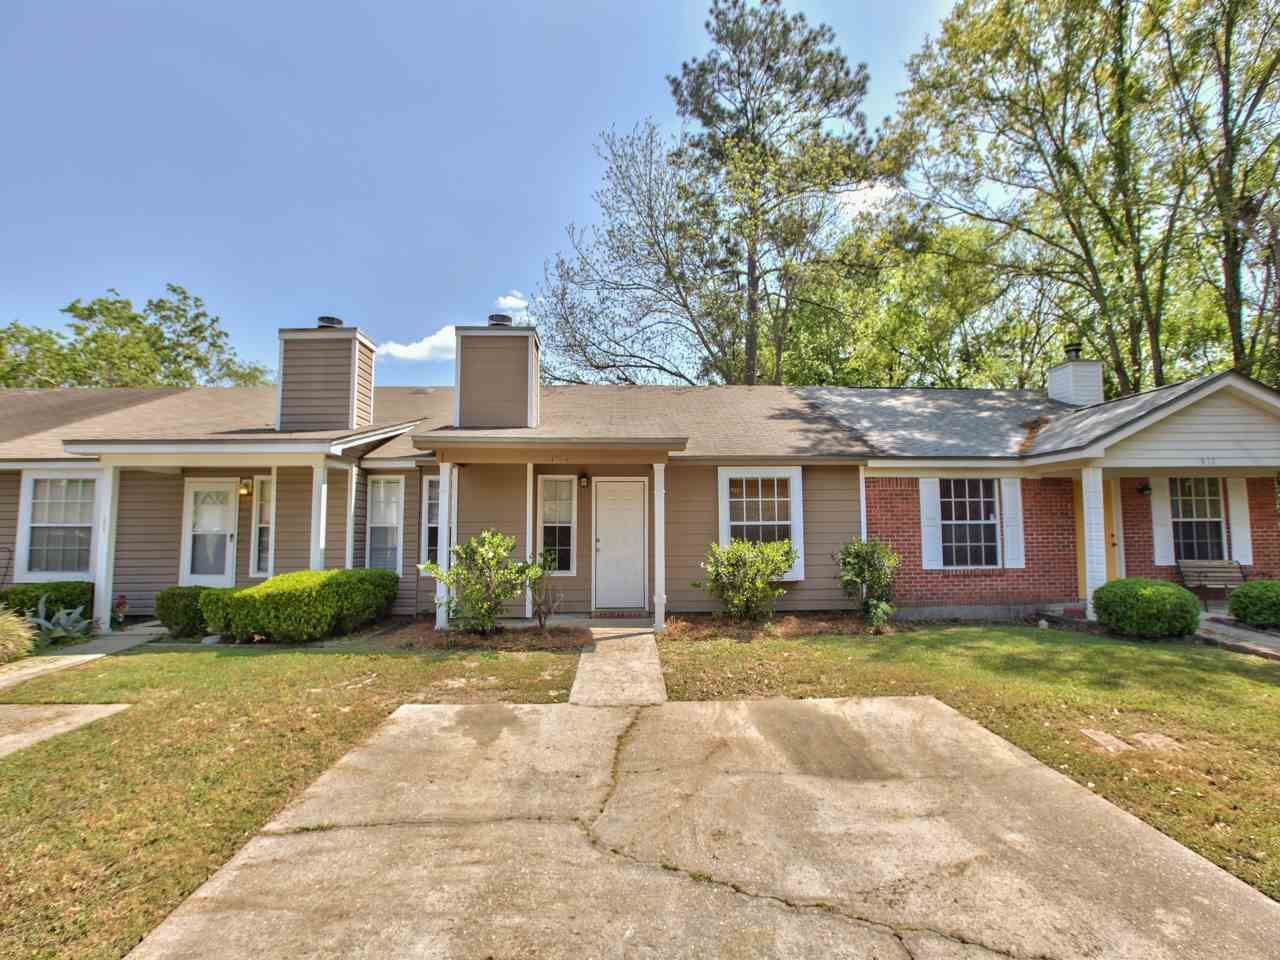 Photo of 1941 Baywind Court, TALLAHASSEE, FL 32303 (MLS # 317424)